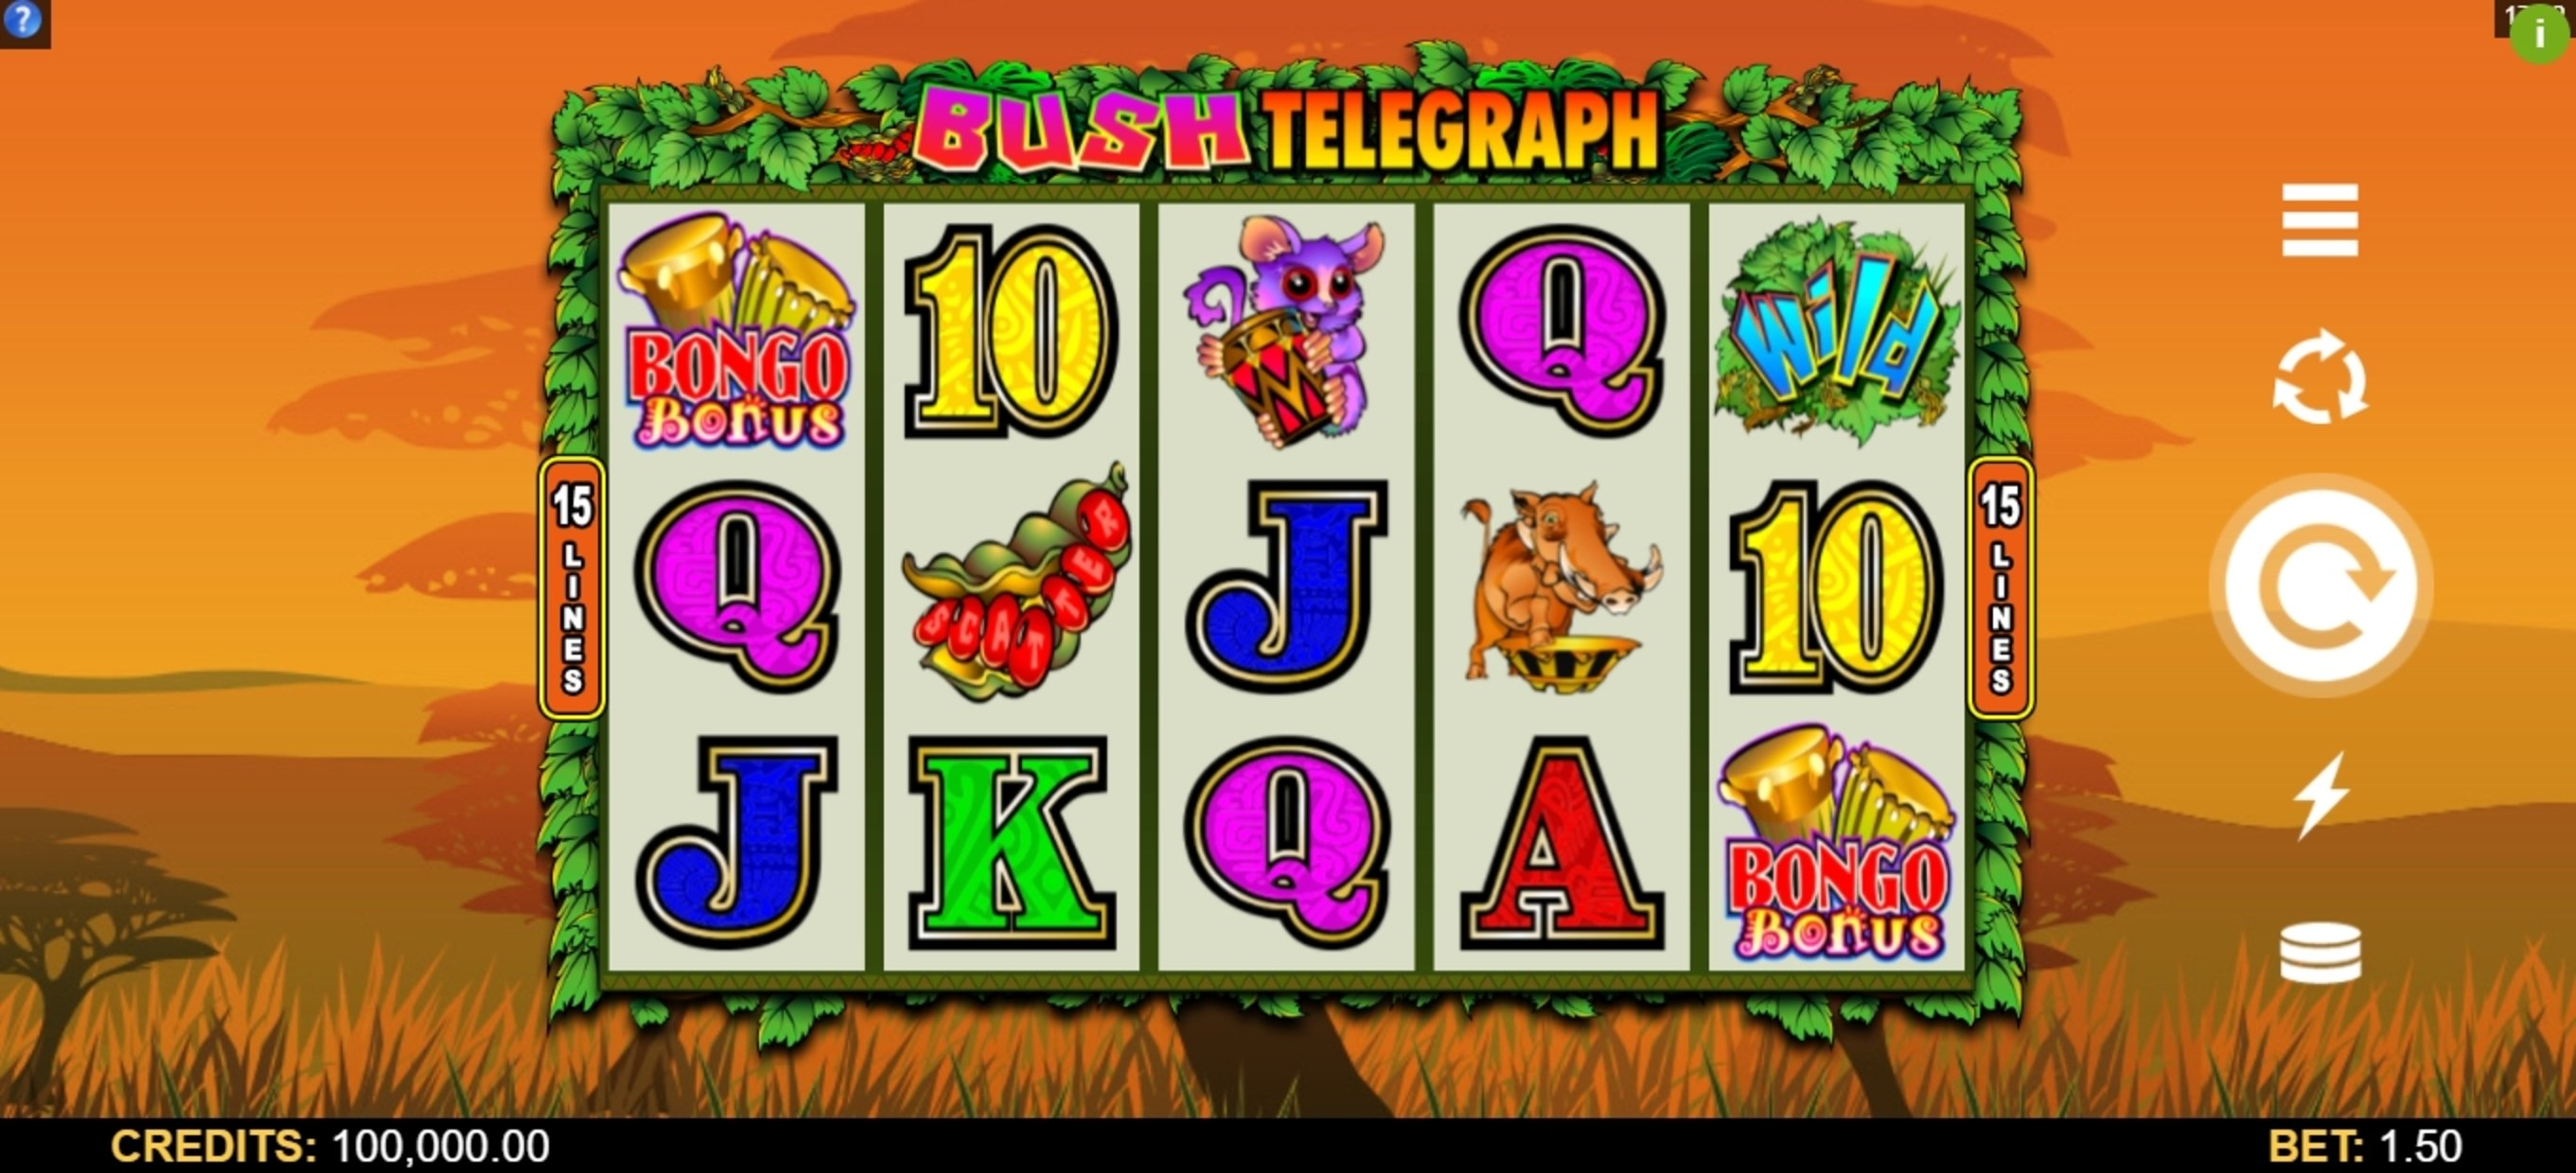 Reels in Bush Telegraph Slot Game by Microgaming